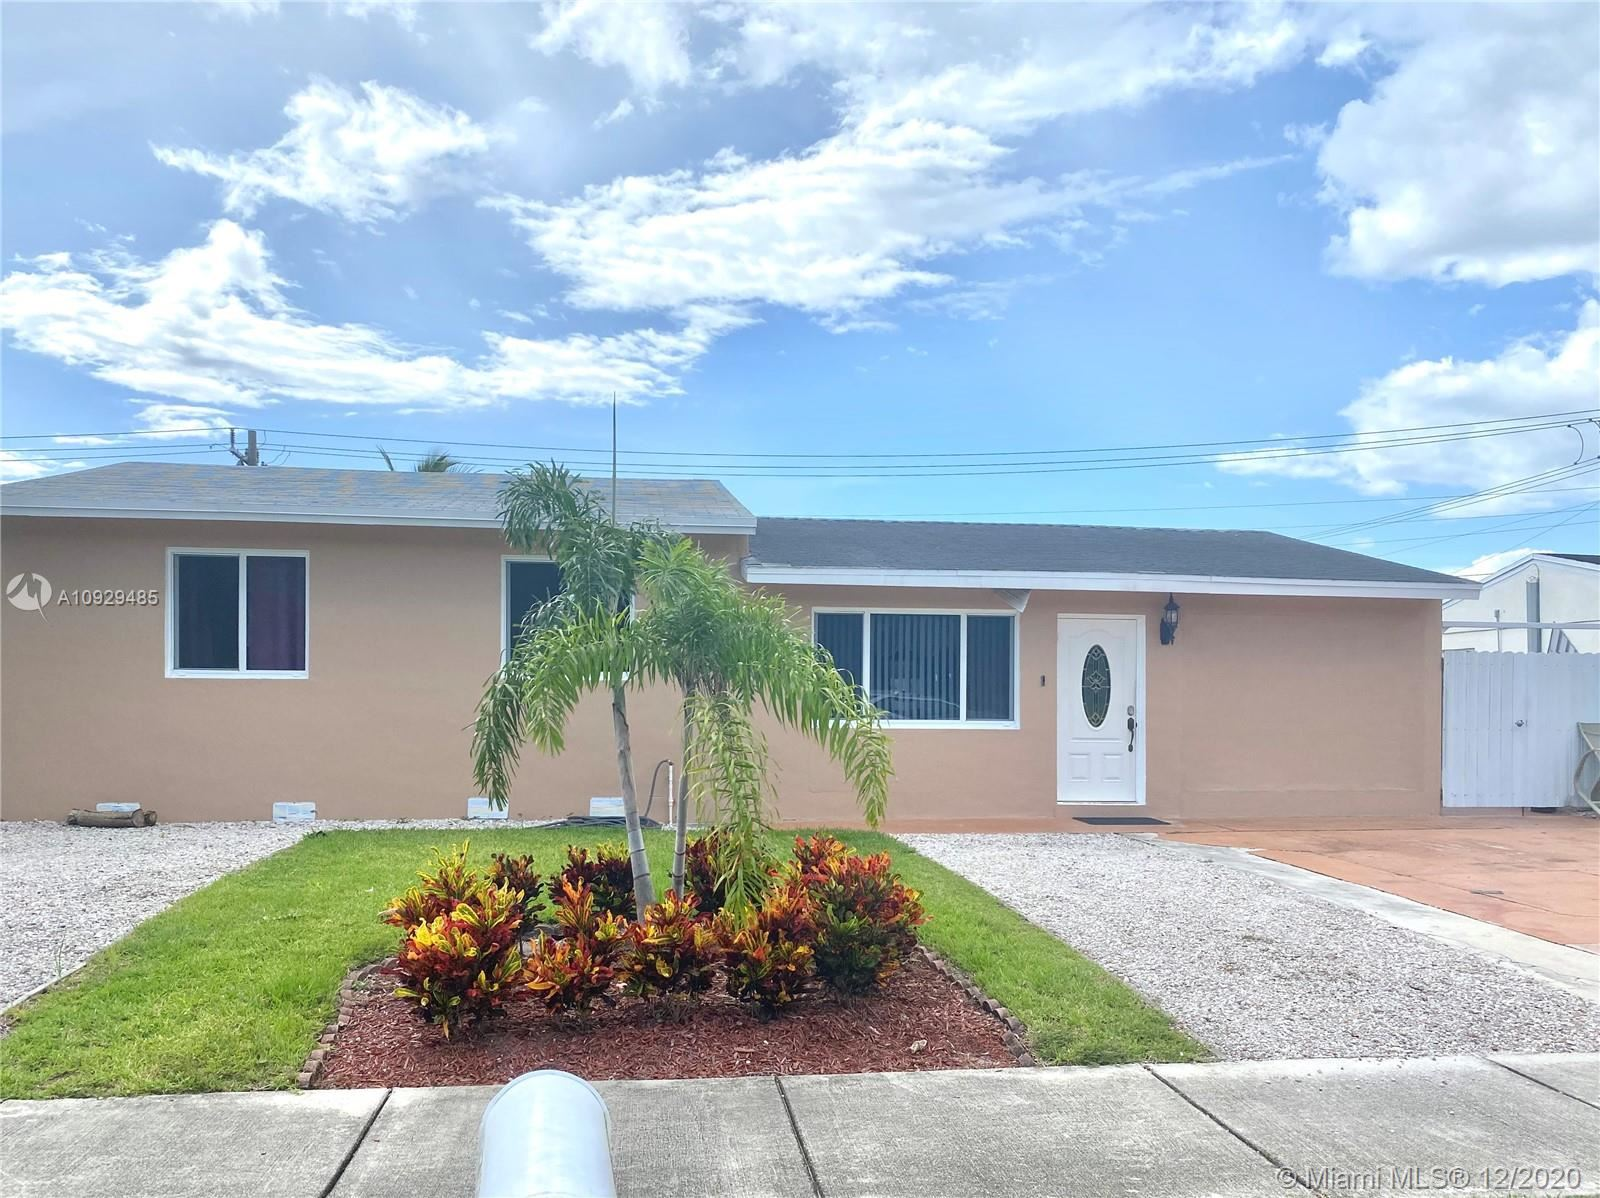 1311 SW 46th Ave, Fort Lauderdale, FL 33317 - #: A10929485